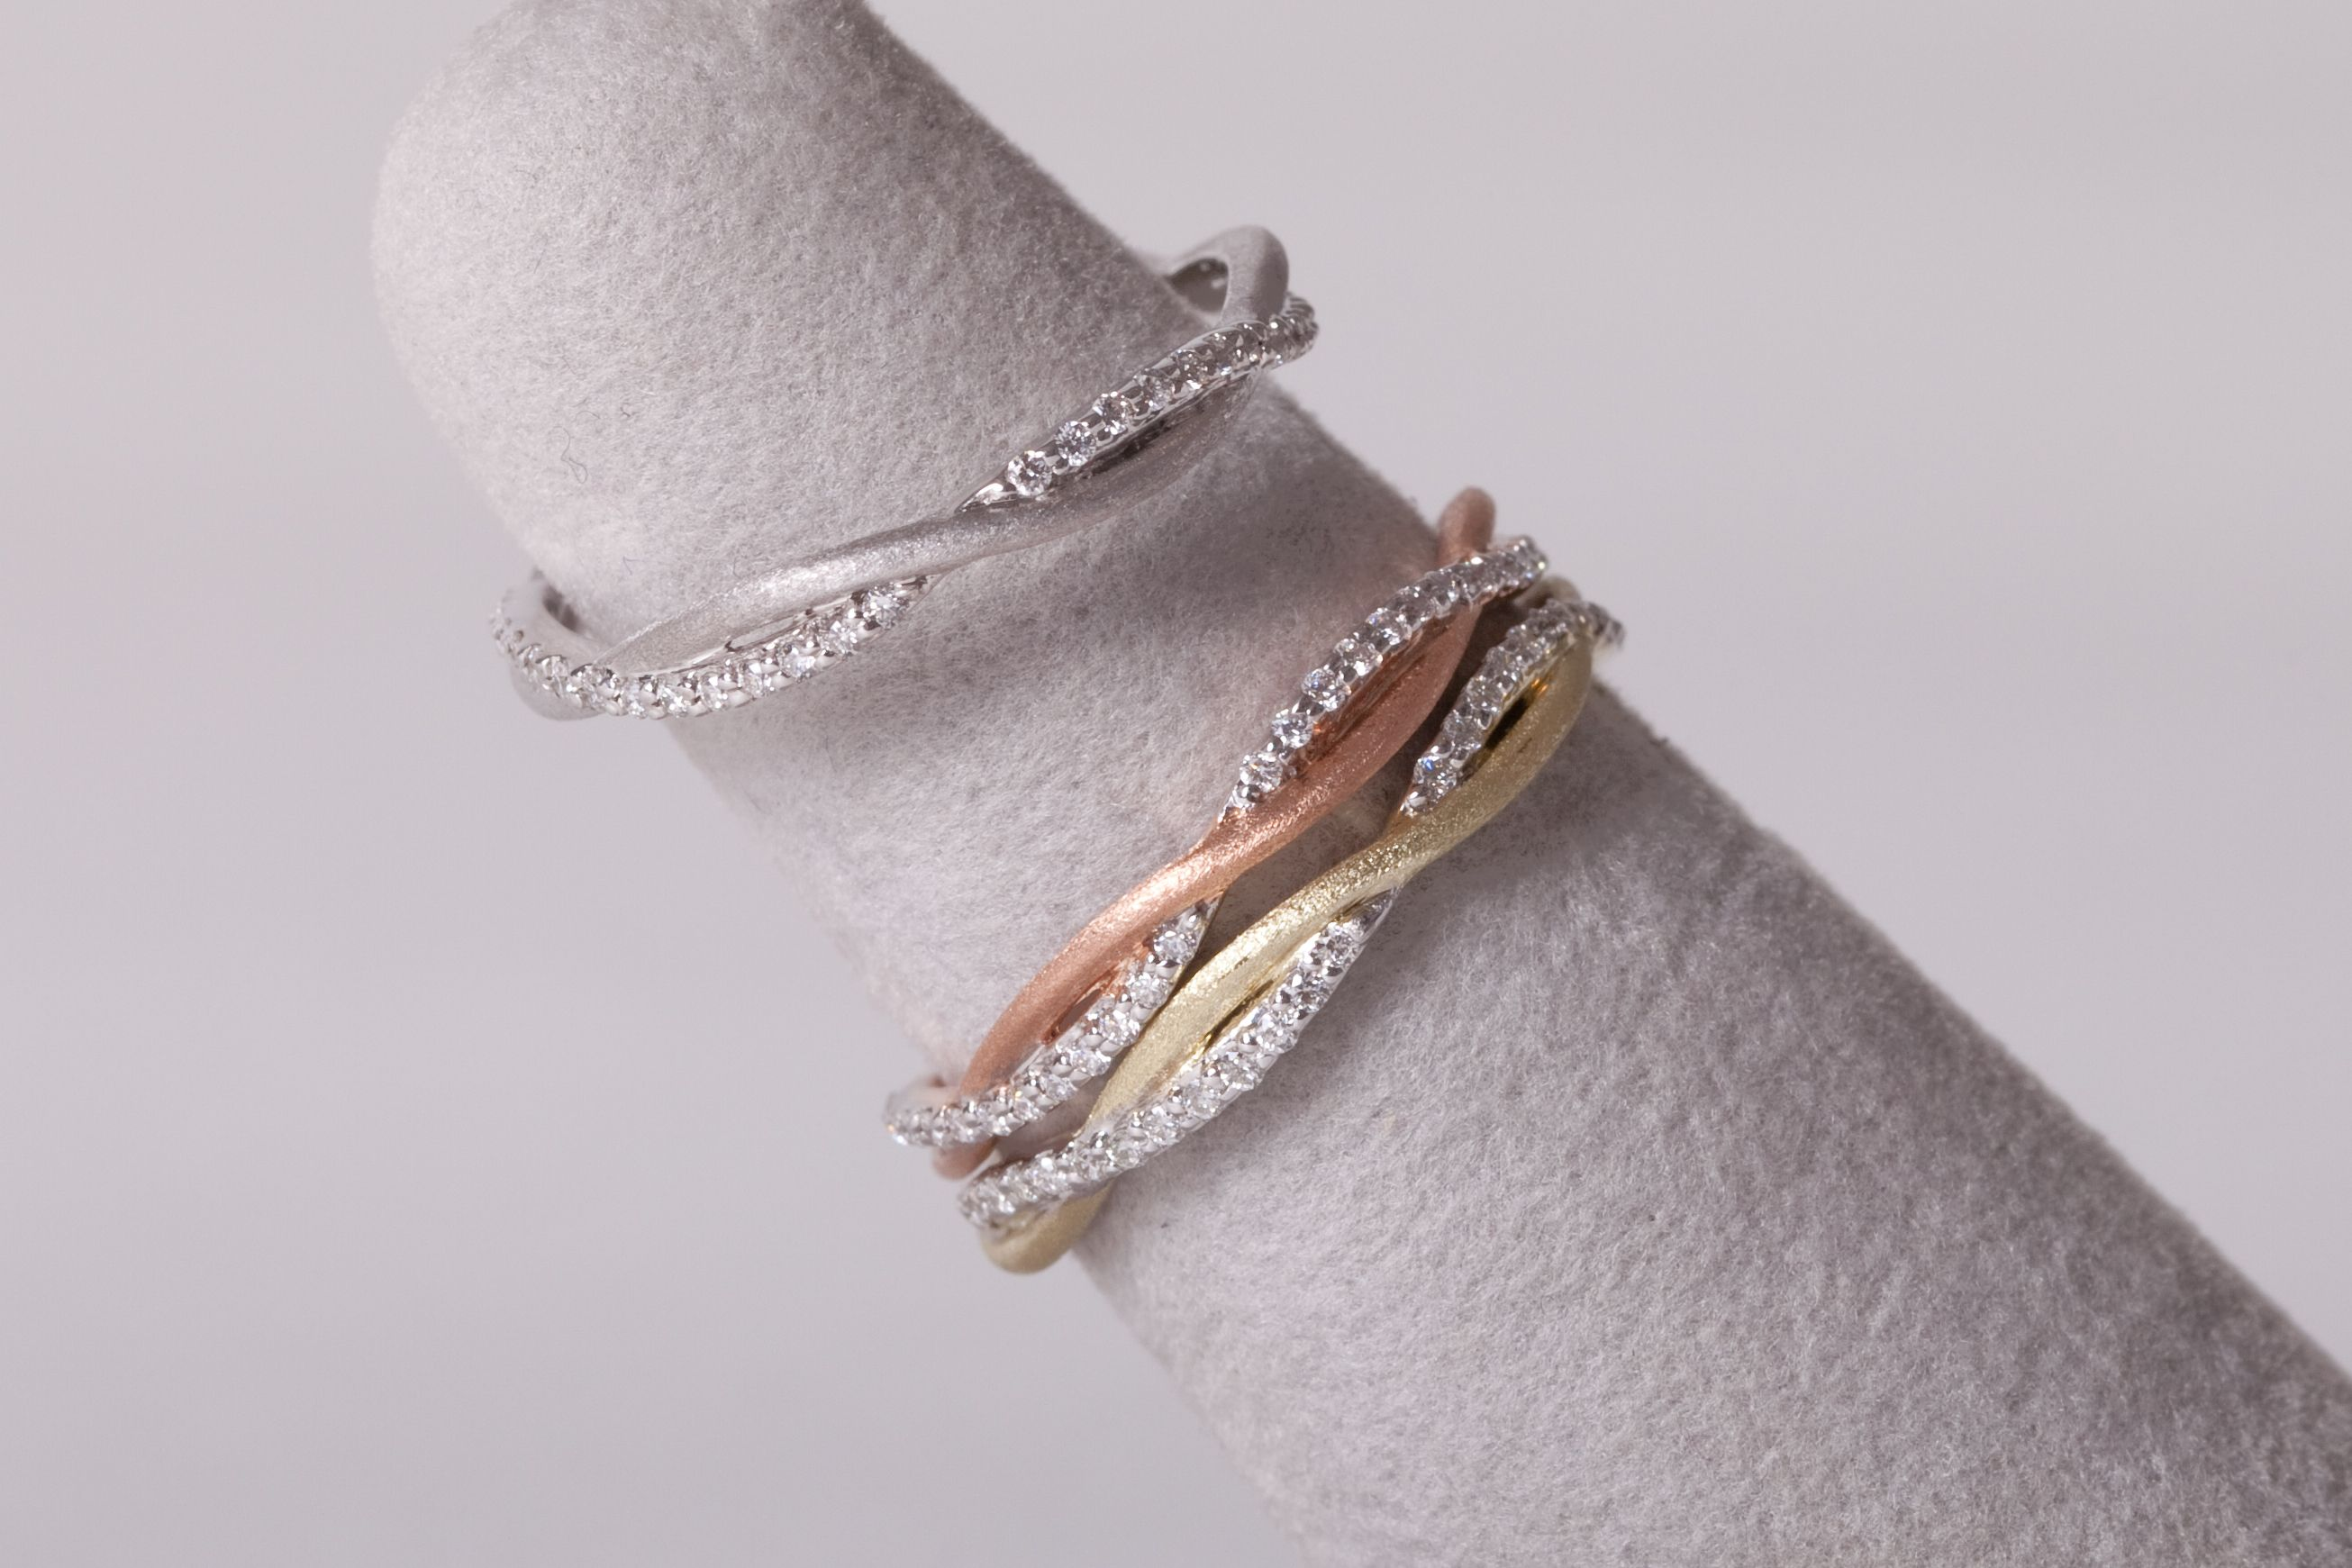 14K WHITE, YELLOW OR ROSE GOLD BRAIDED BANDS, DIAMONDS